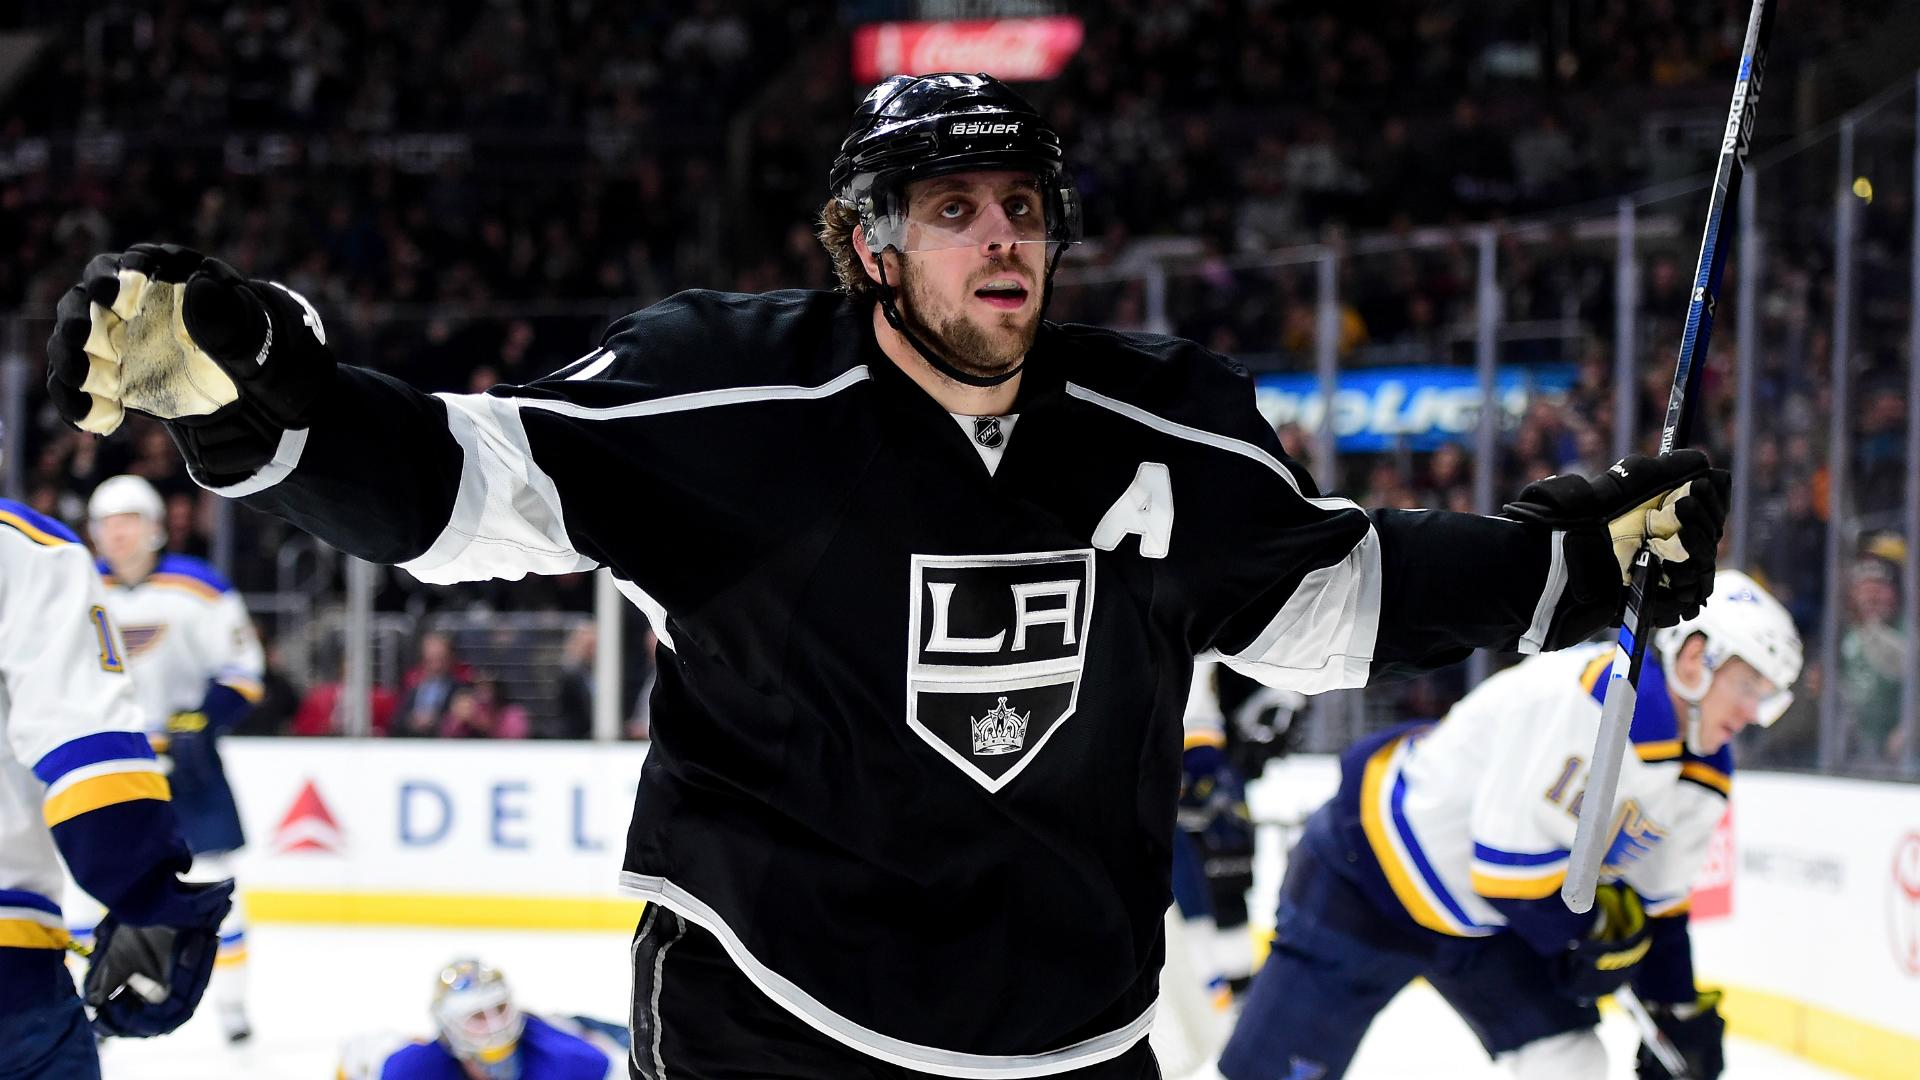 Kings end Rangers streak, Penguins triumph in overtime